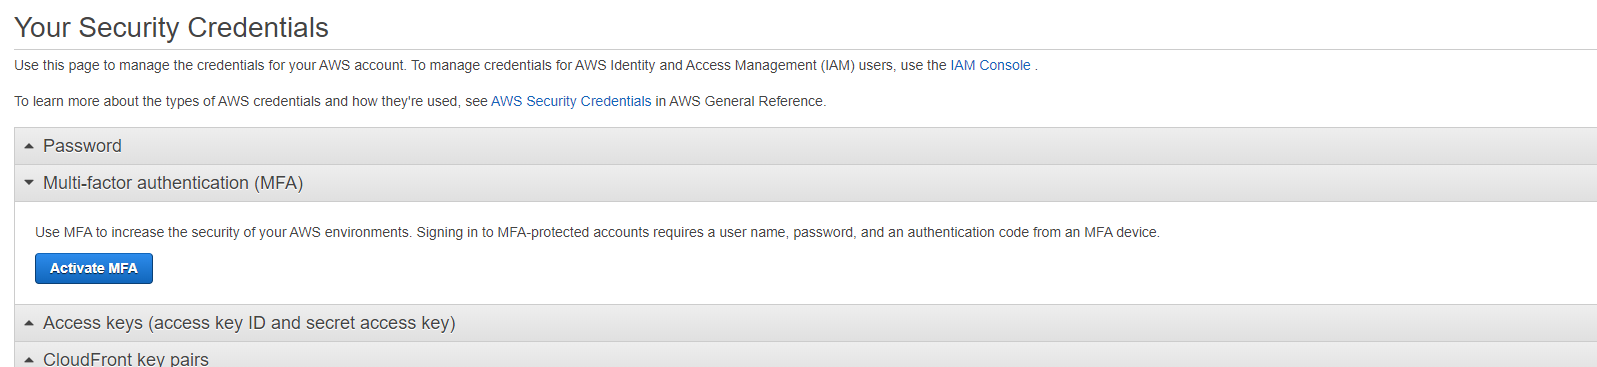 Activate MFA in AWS using the wizard on the 'Your Security Credentials' page.